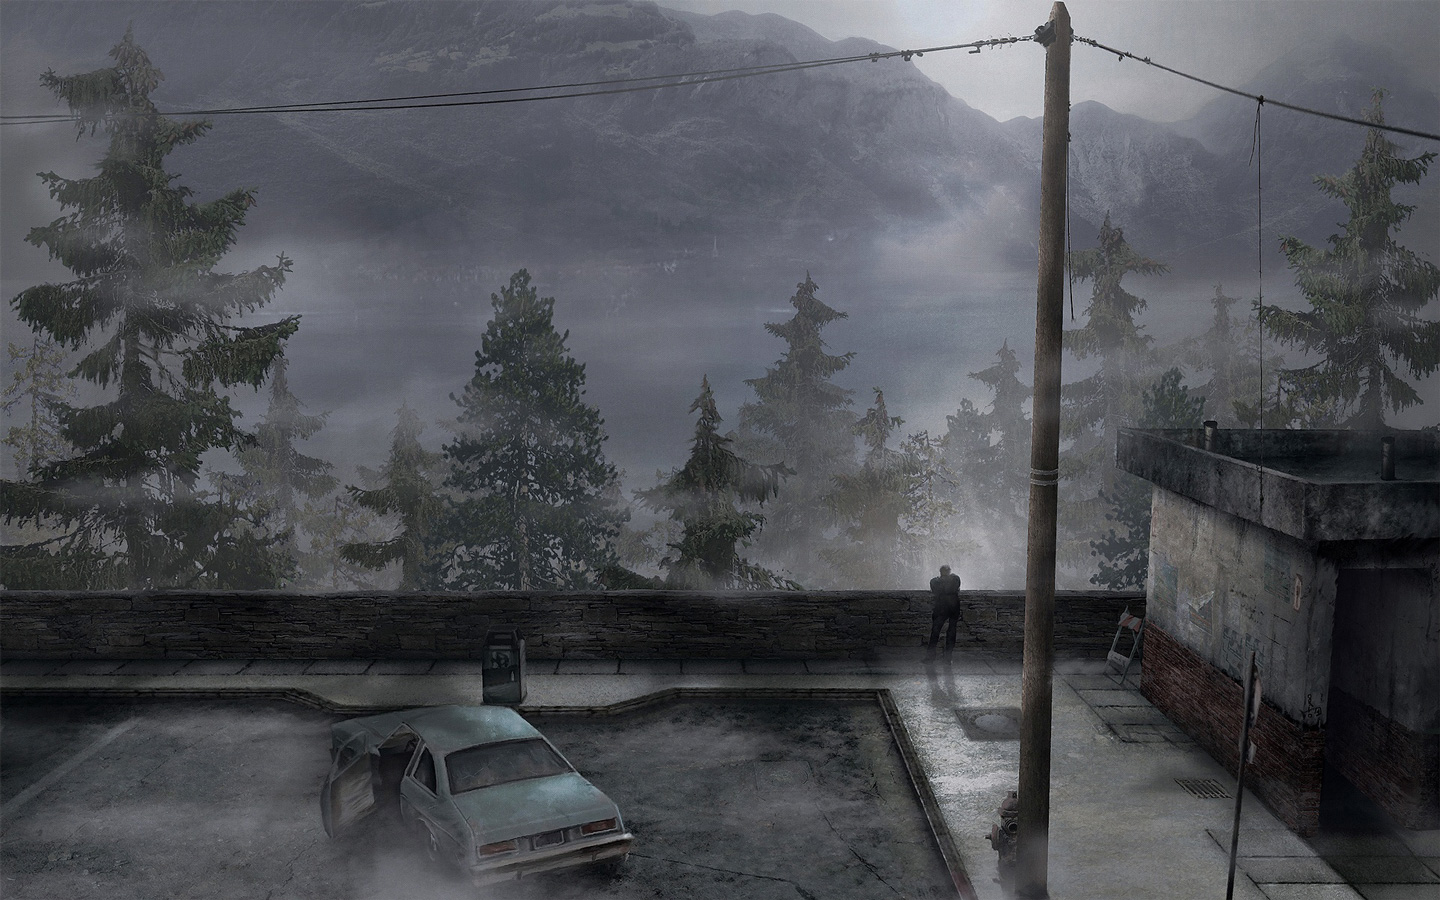 Silent Hill 2 Wallpaper in 1440x900